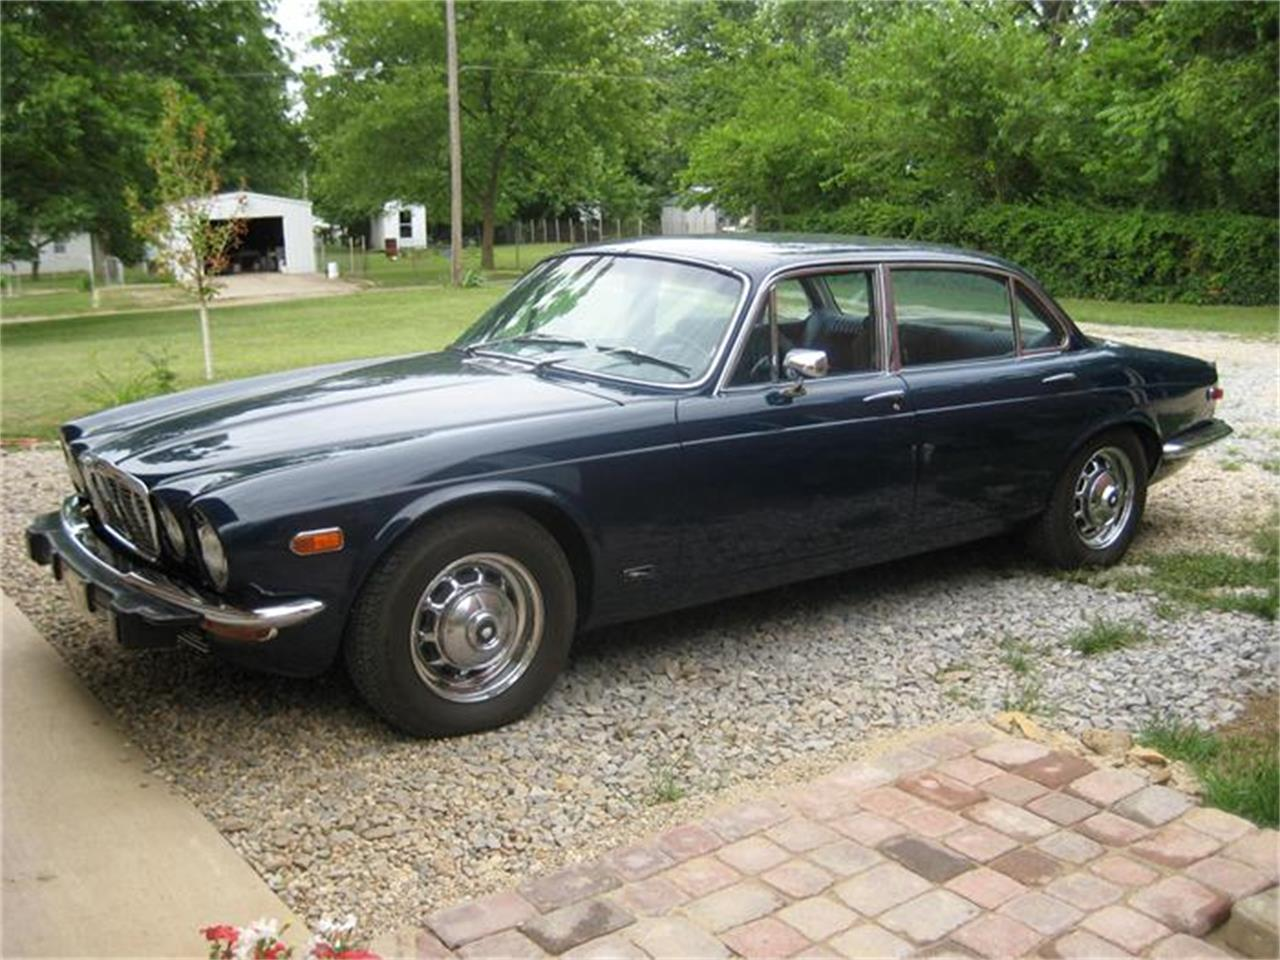 Large Picture of 1973 XJ12 located in Grayville Illinois - $13,400.00 Offered by a Private Seller - 8FQM